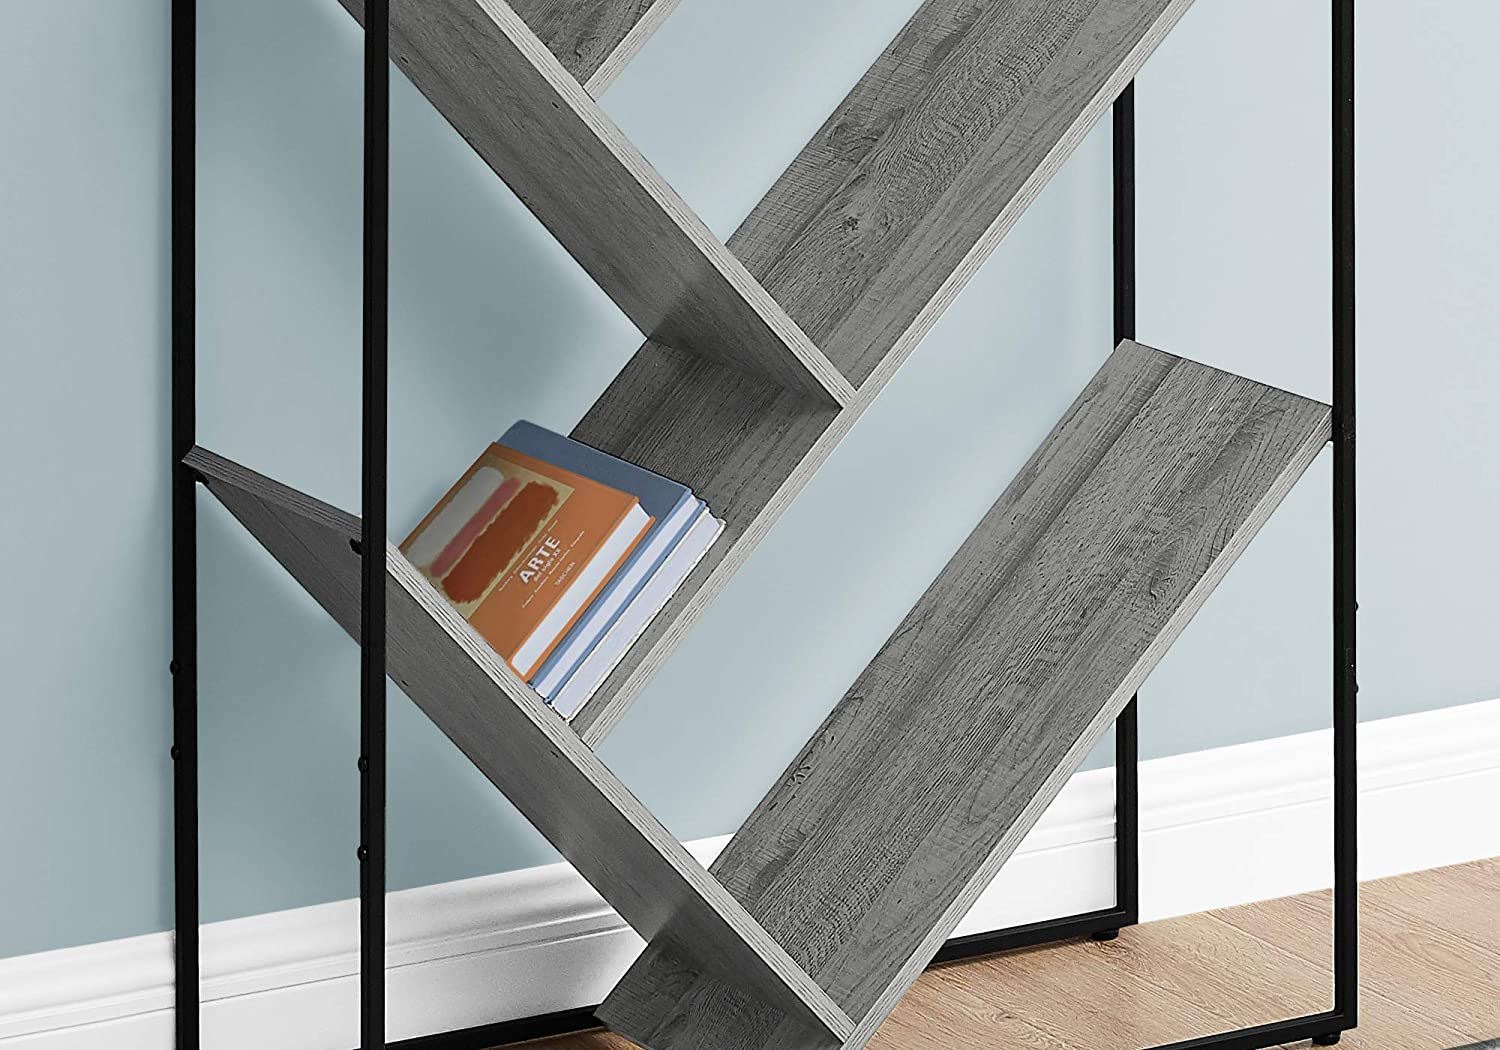 Grey Narrow Tall for Living Room Office or Bedroom Bookcase 60 H Monarch Specialties I 2200 Bookshelf Etagere with 5 Tier Open Shelves V-Shaped Storage